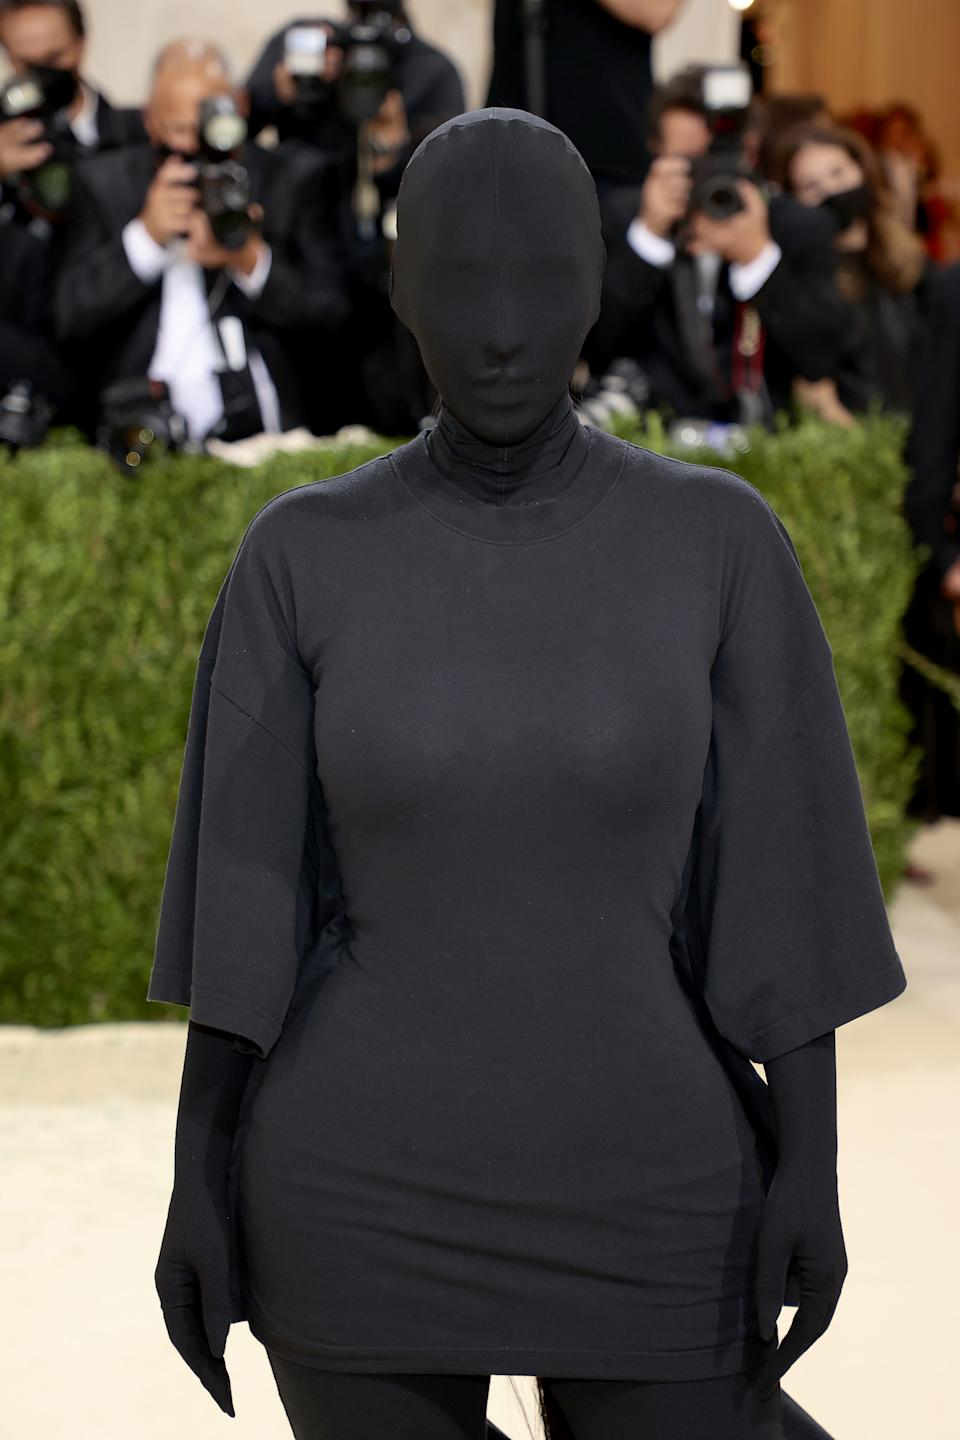 A close-up of a 'faceless' Kim Kardashian entirely covered in a black Balenciaga garment at the Met Gala 2021. (Getty Images)